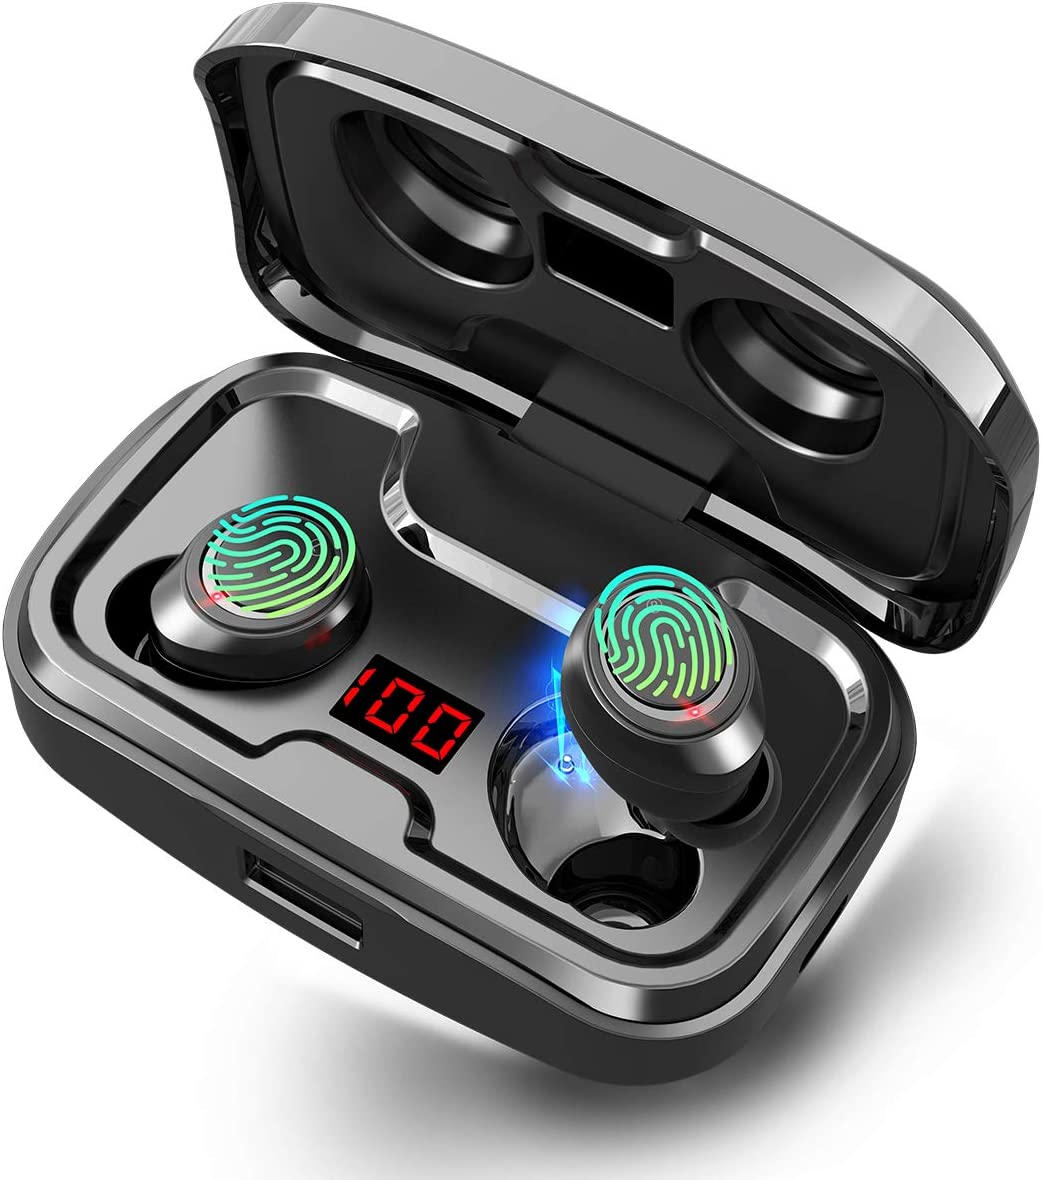 chrome colored GRDE wireless earbuds in their charging case